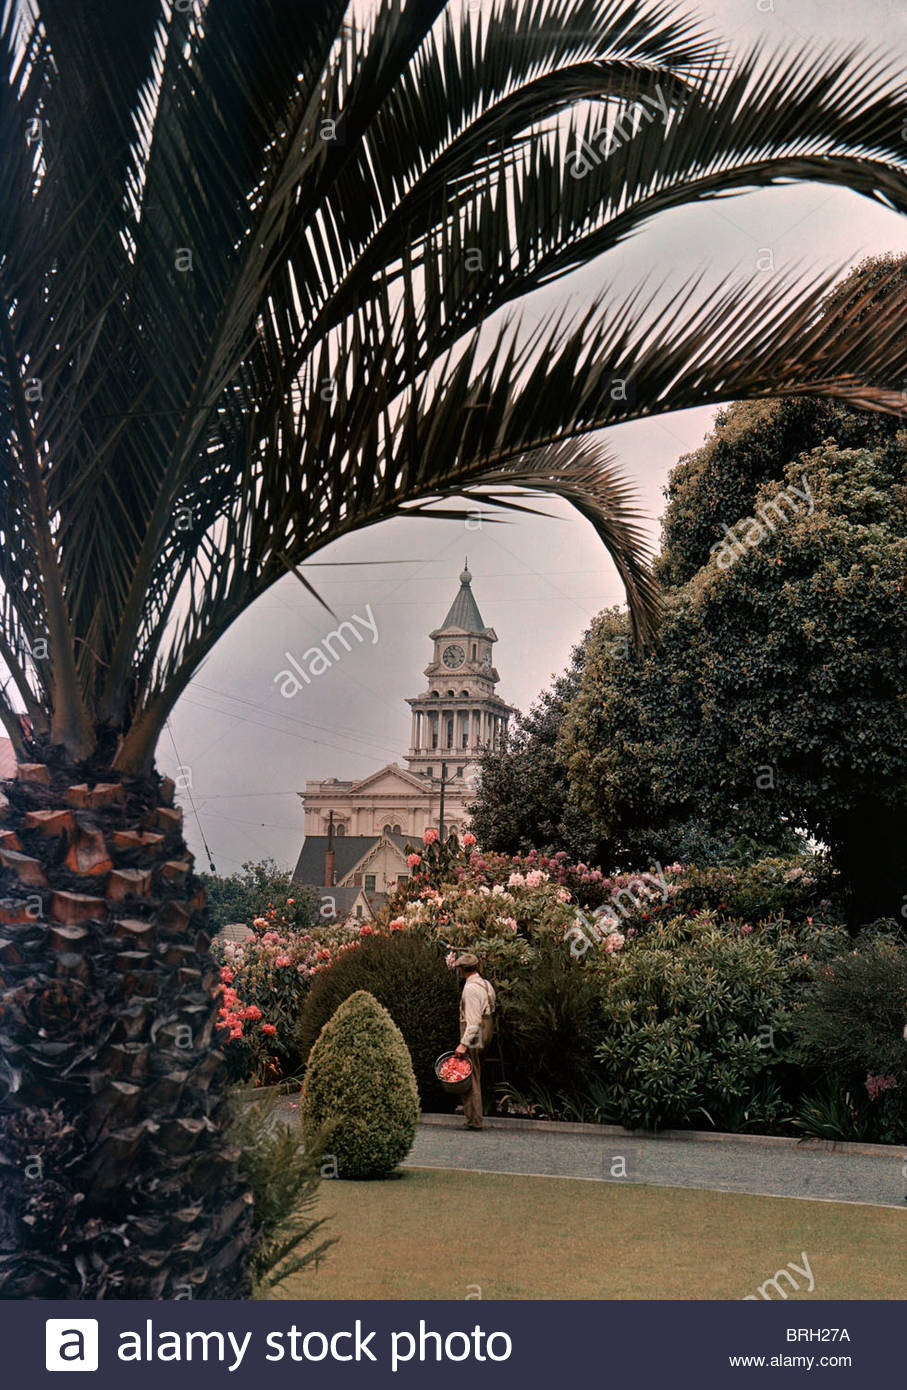 The Eureka Courthouse, framed by date palms and rhododendrons. - Stock Image